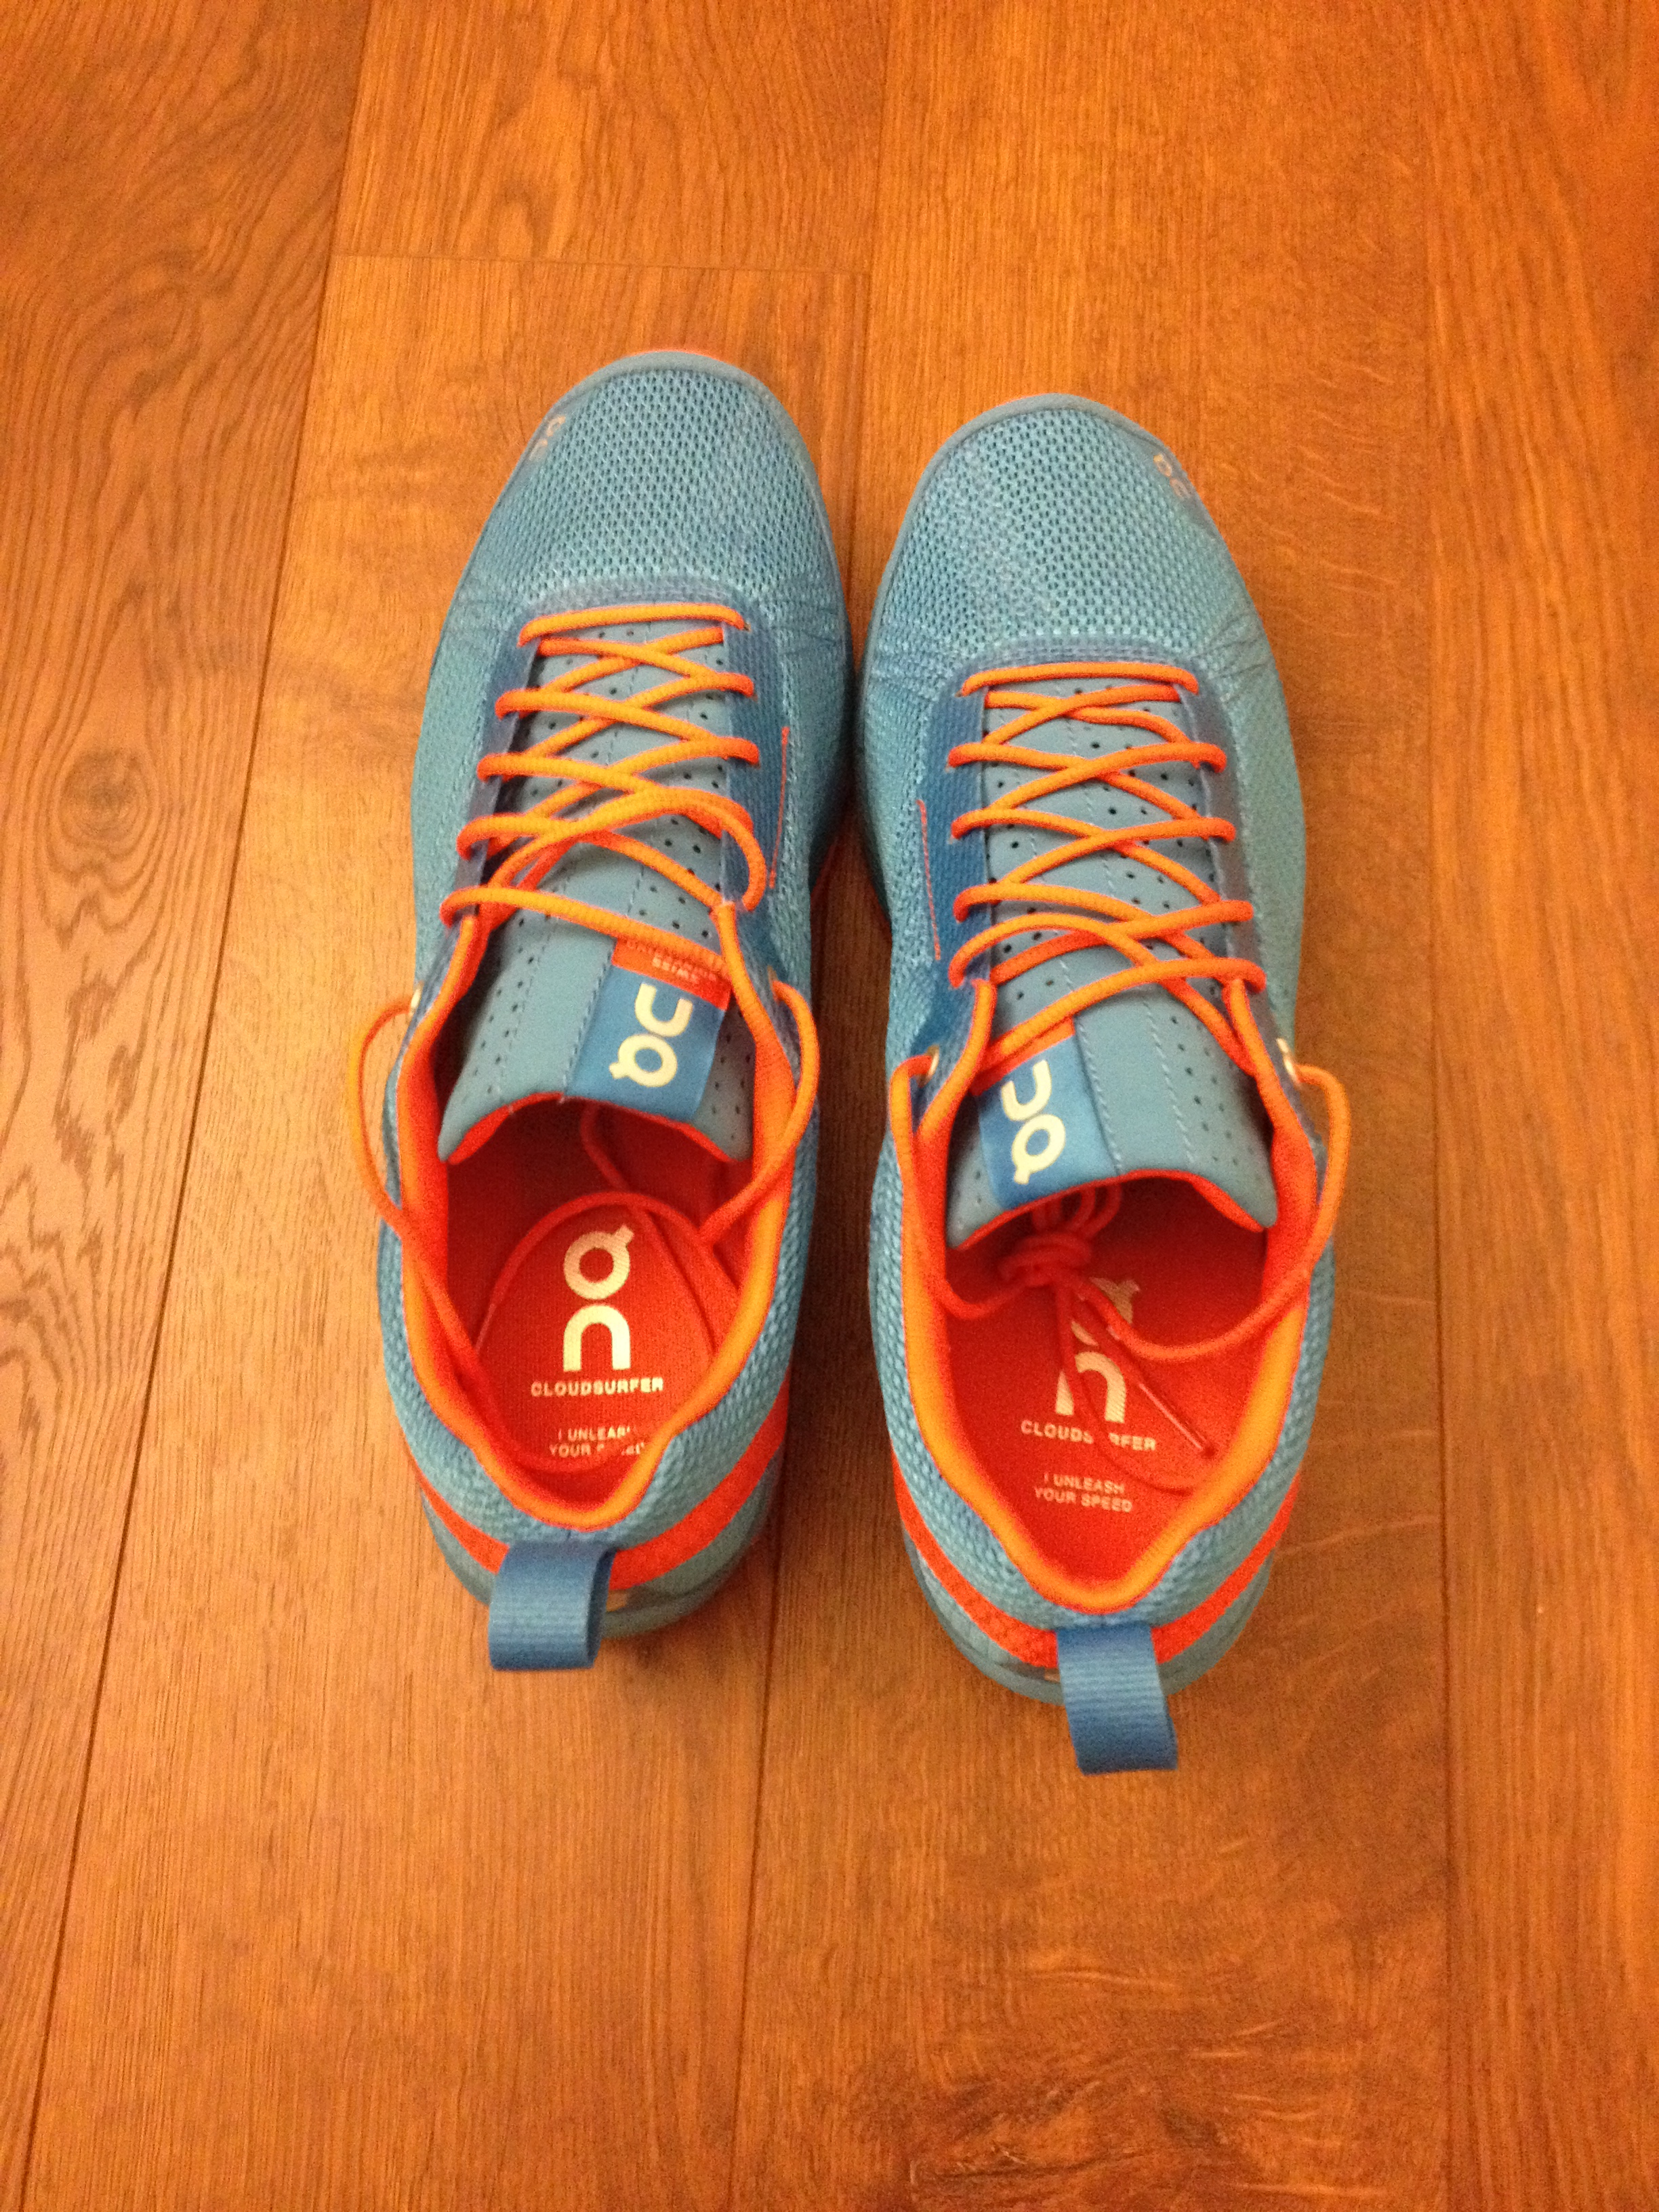 Shoe Review: On Cloudsurfer – the 150